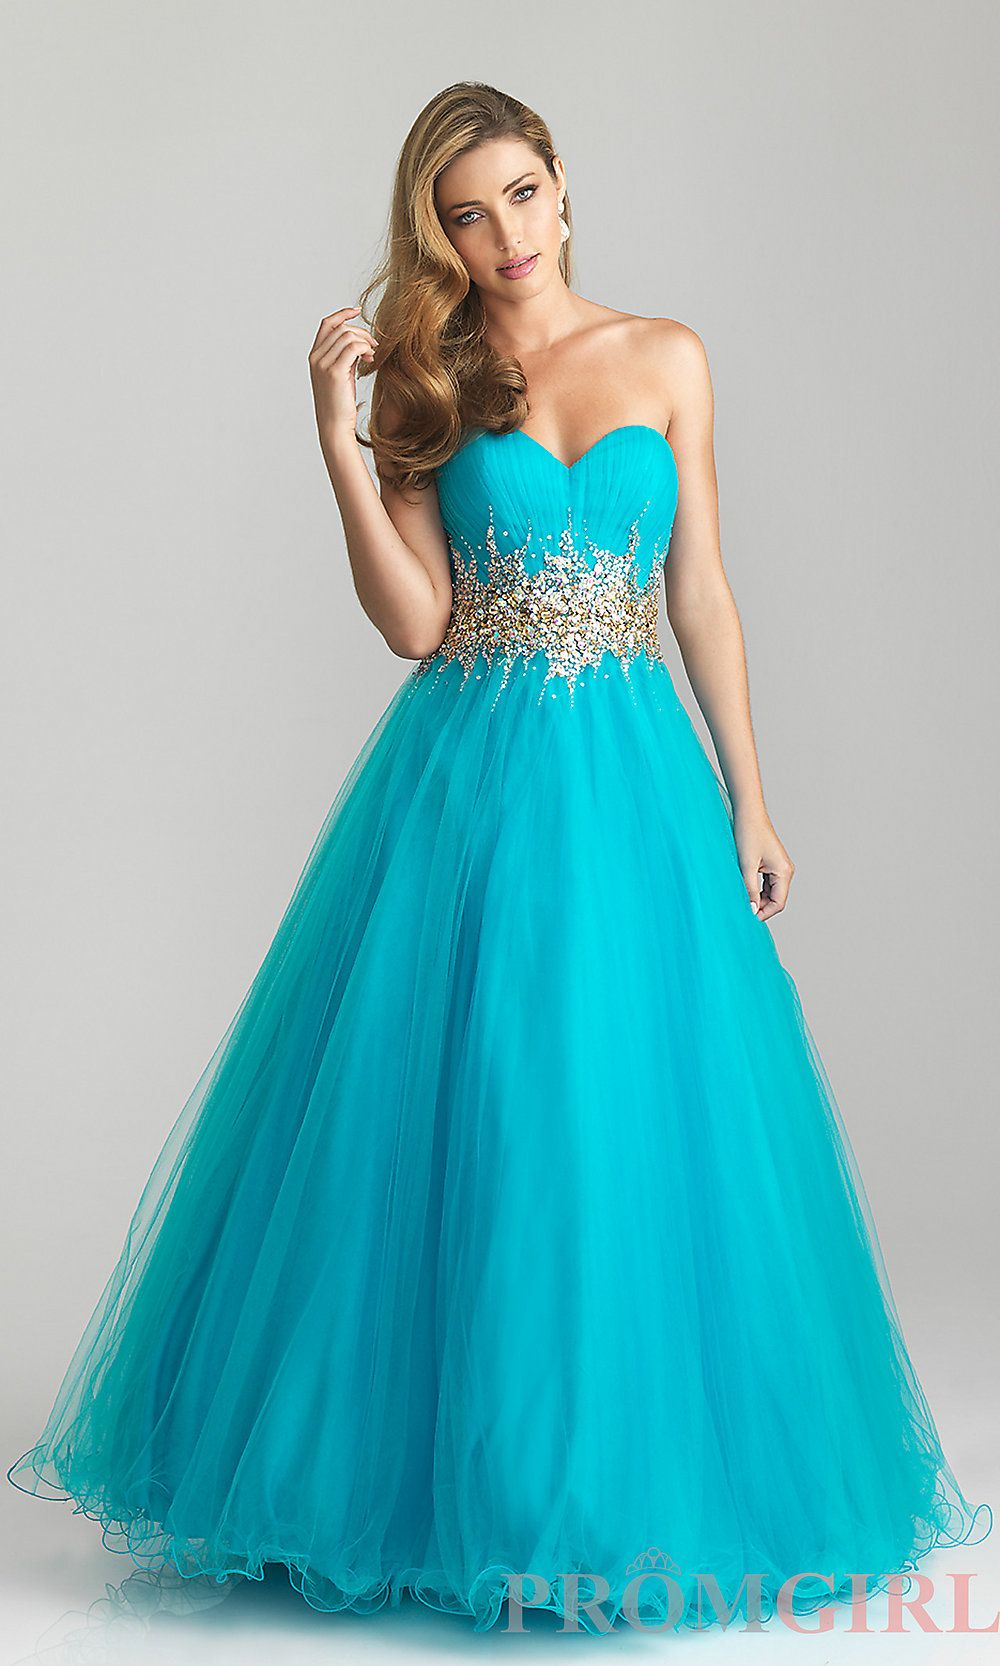 turqoise dresses | Strapless Ball Gowns for Prom, Night Moves Prom ...